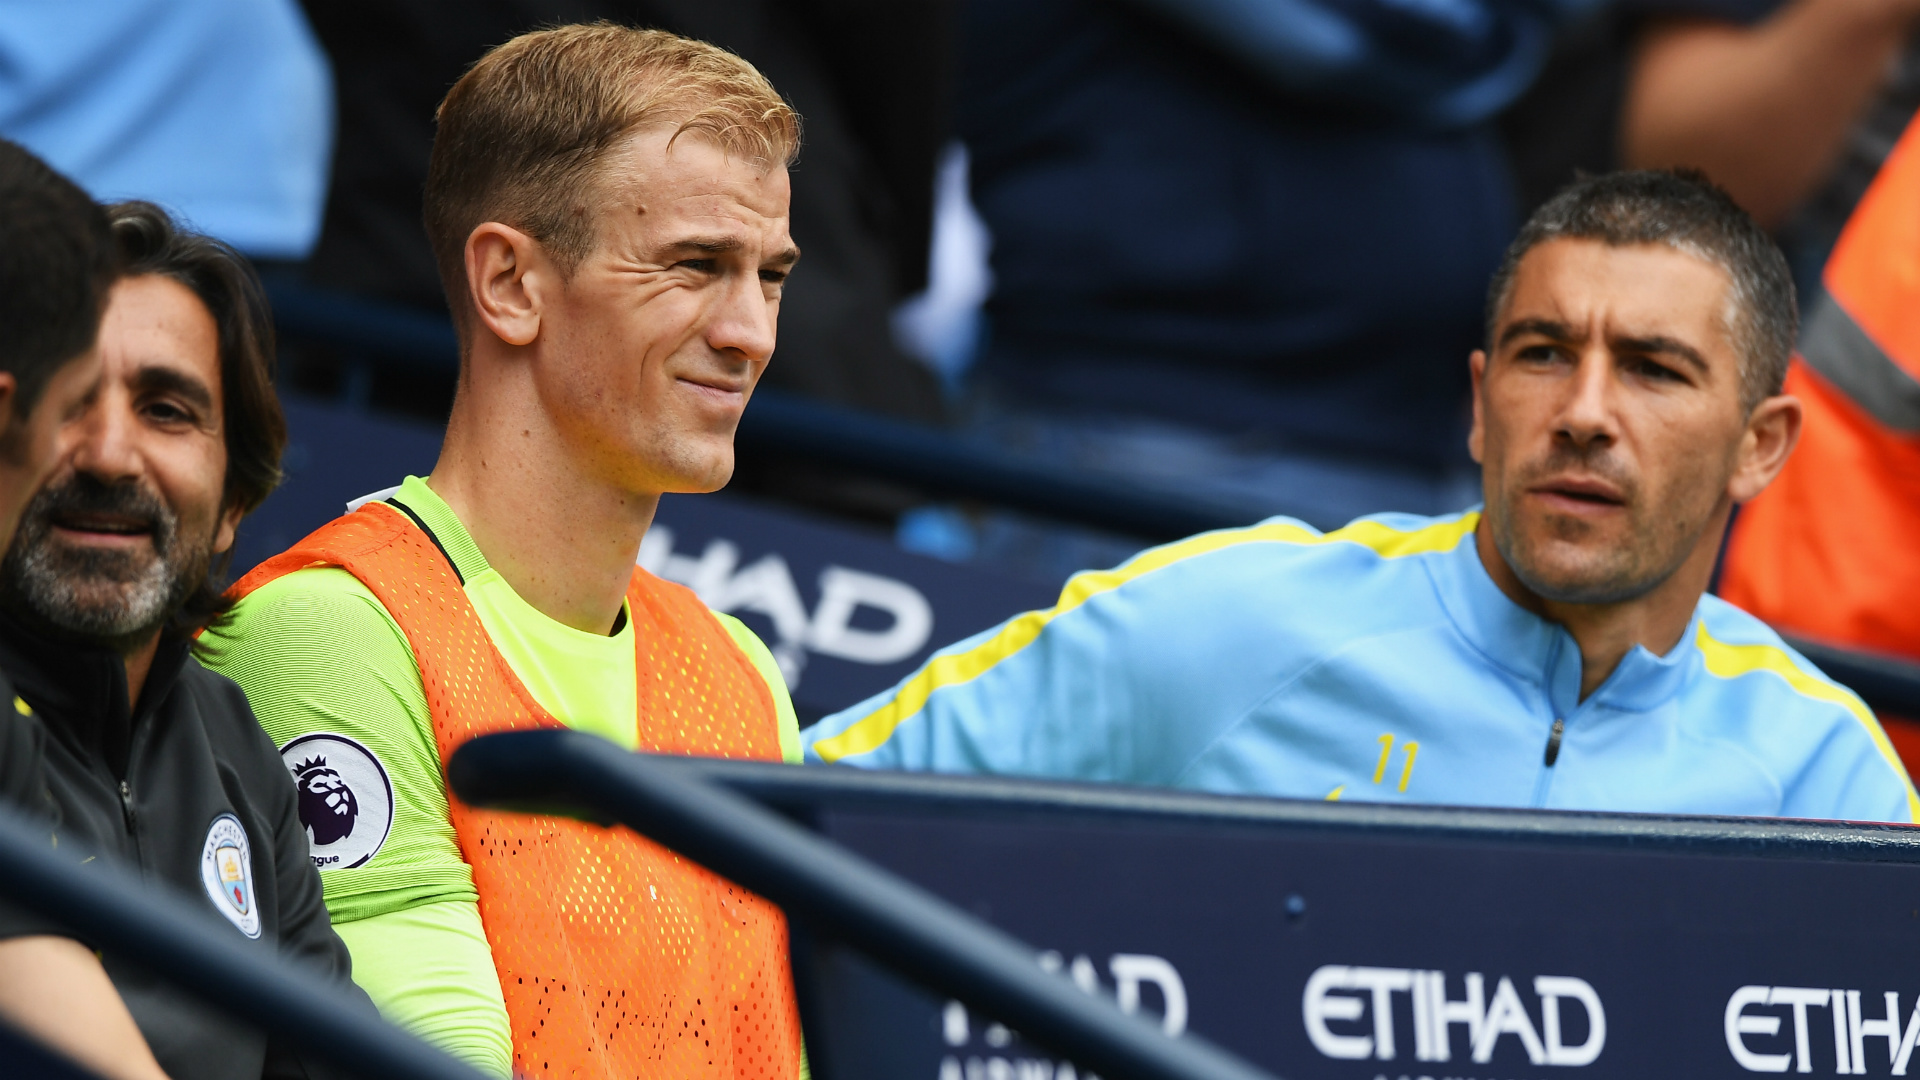 Guardiola had to make his stamp at Man City – Hart reflects on departure